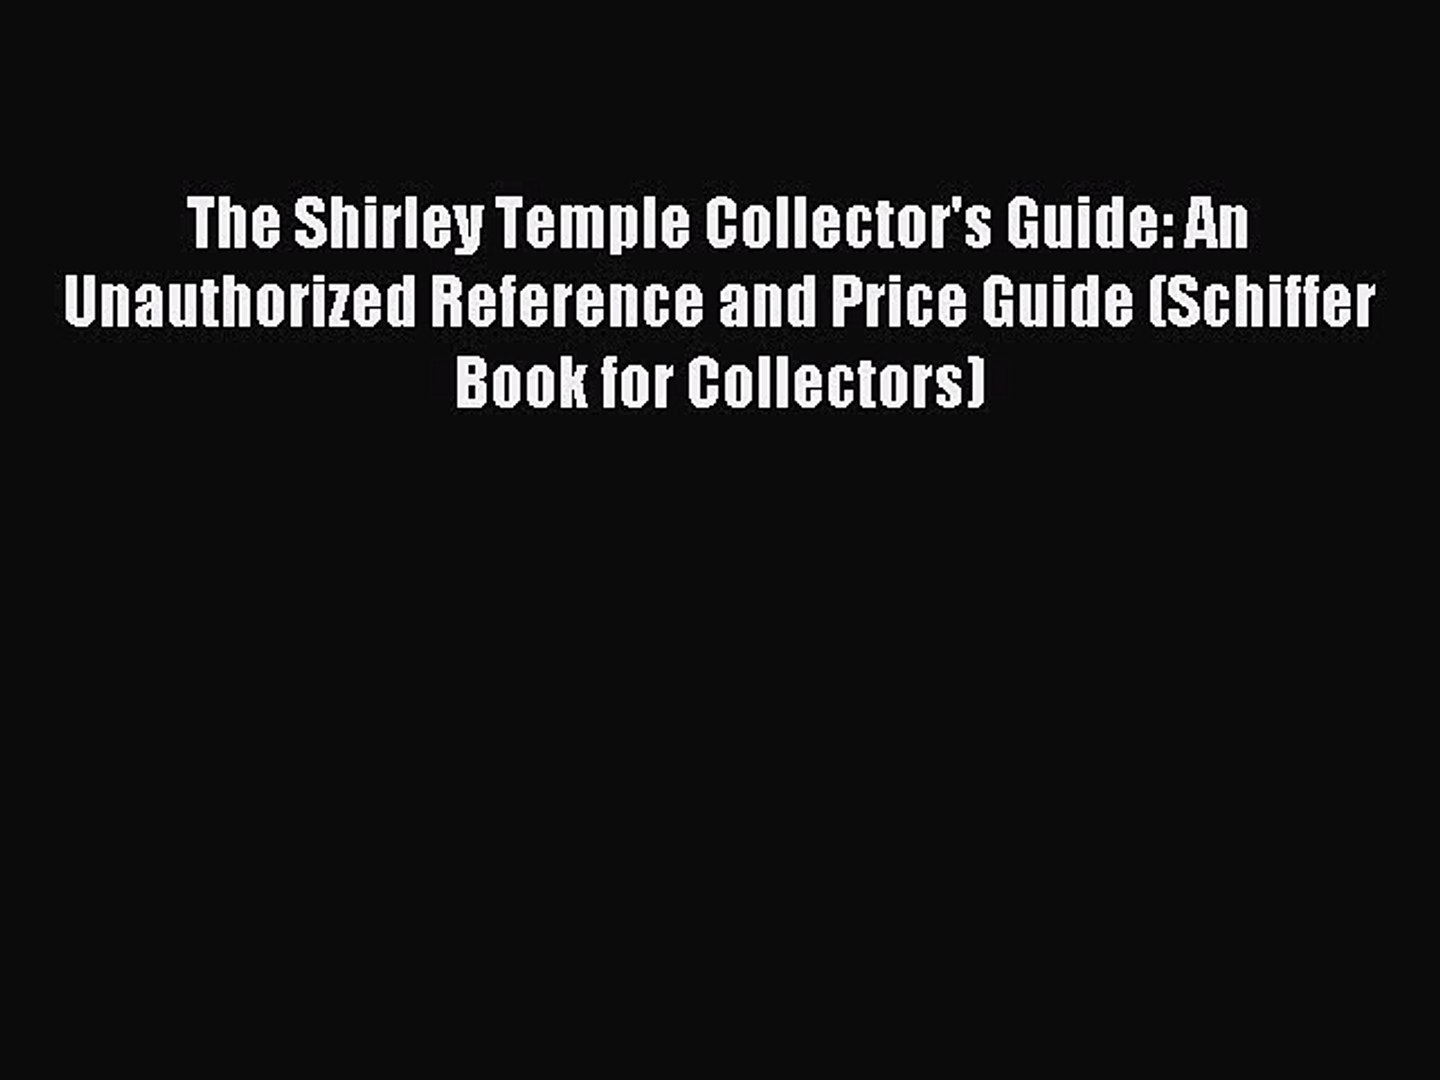 Read The Shirley Temple Collector's Guide: An Unauthorized Reference and Price Guide (Schiffer